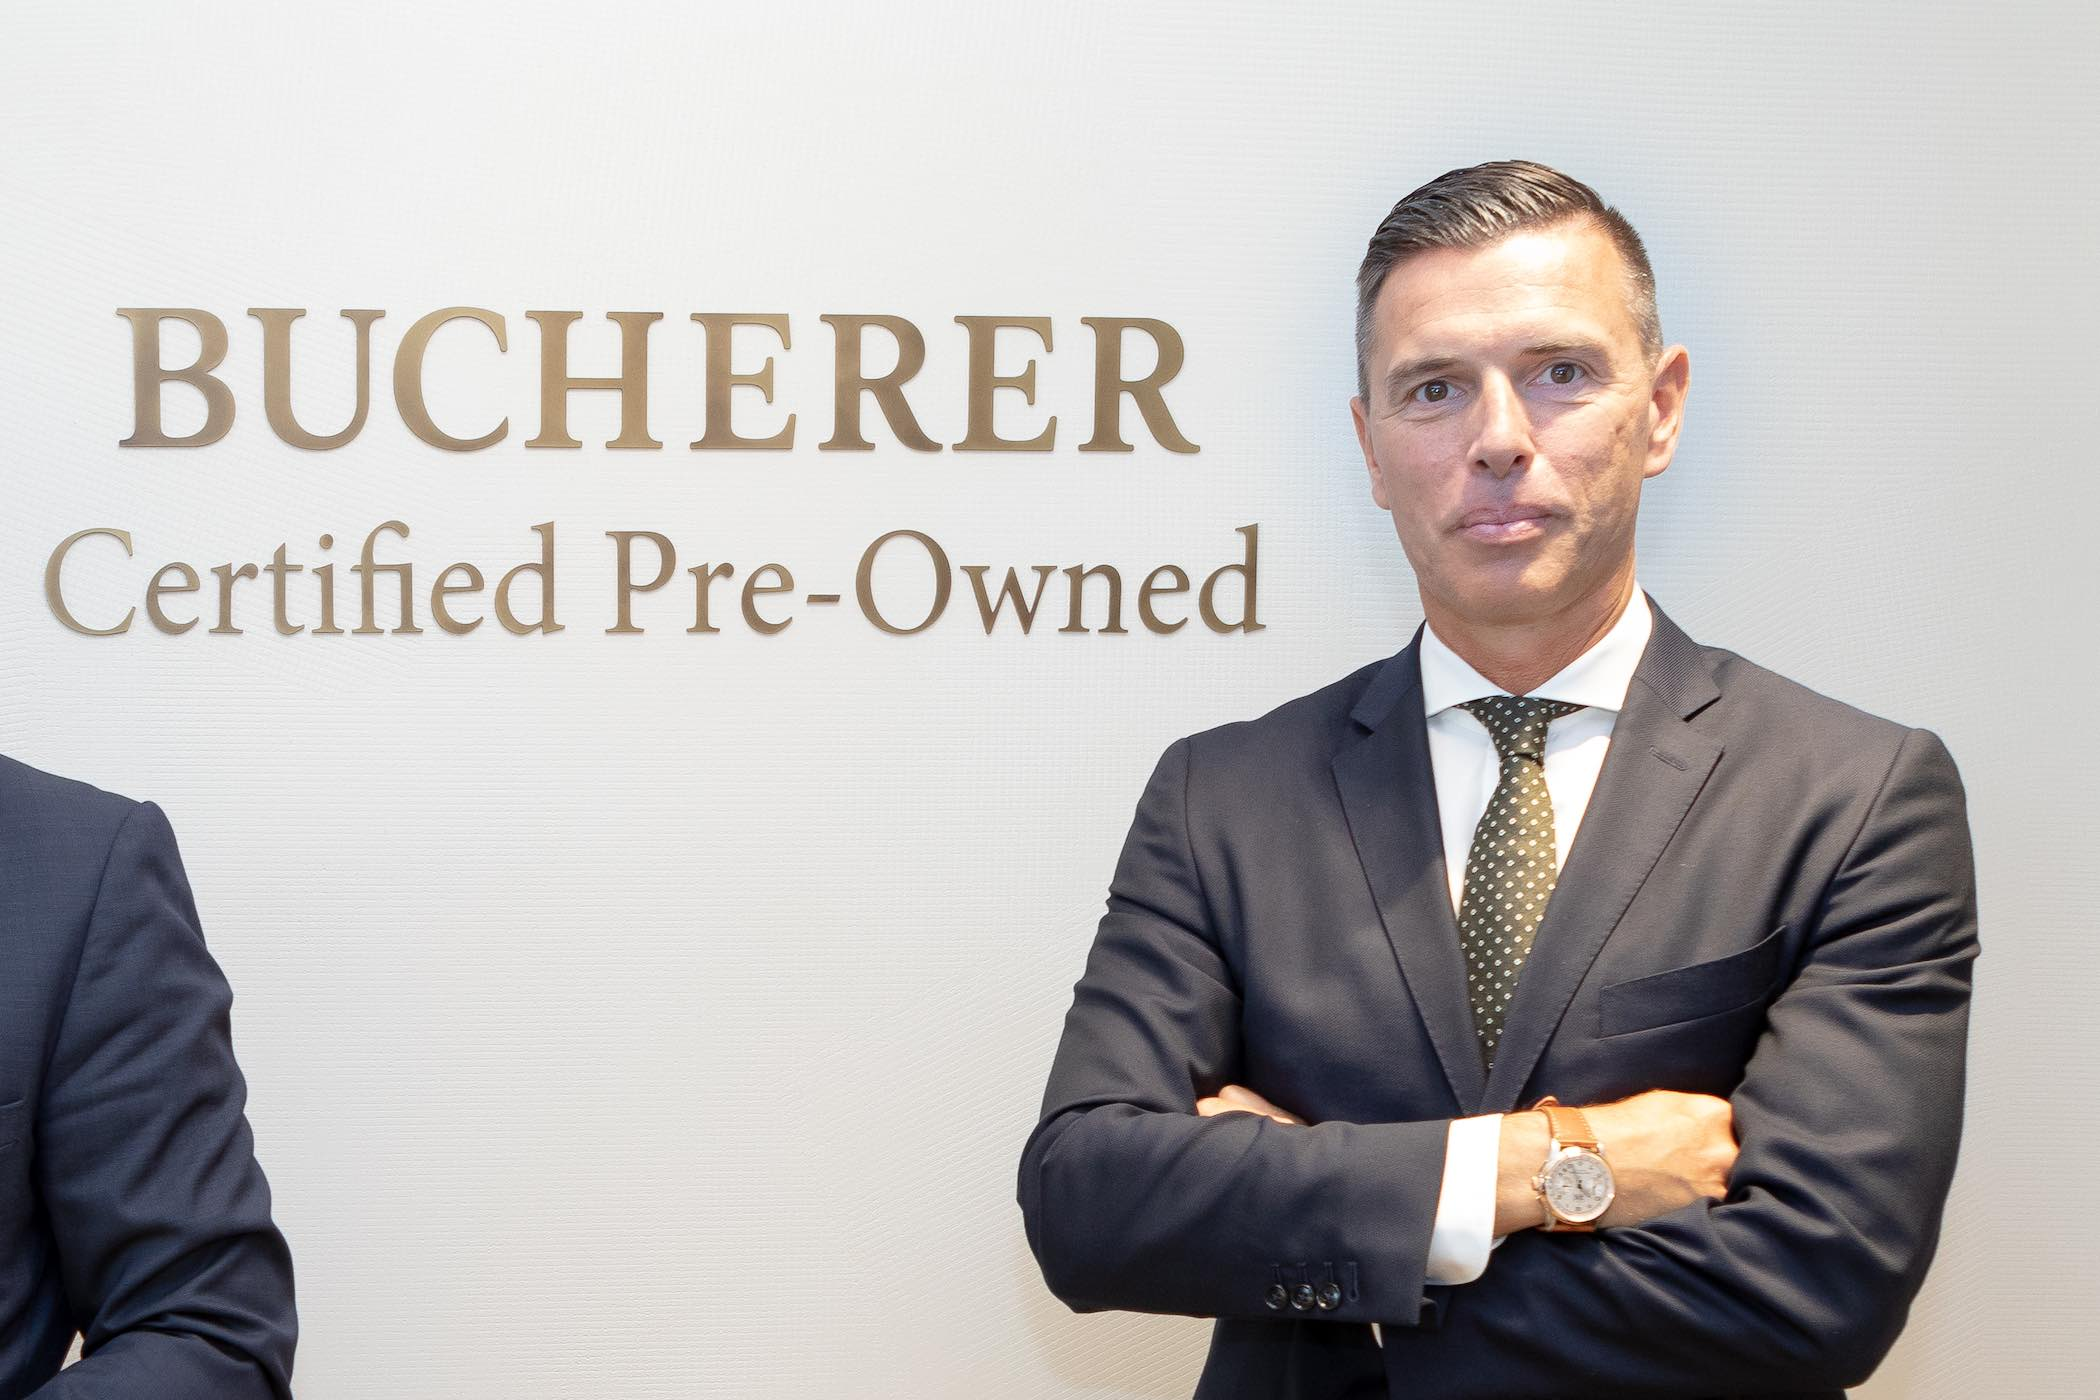 Patrick Graf CCO Bucherer - interview Certified Pre-Owned